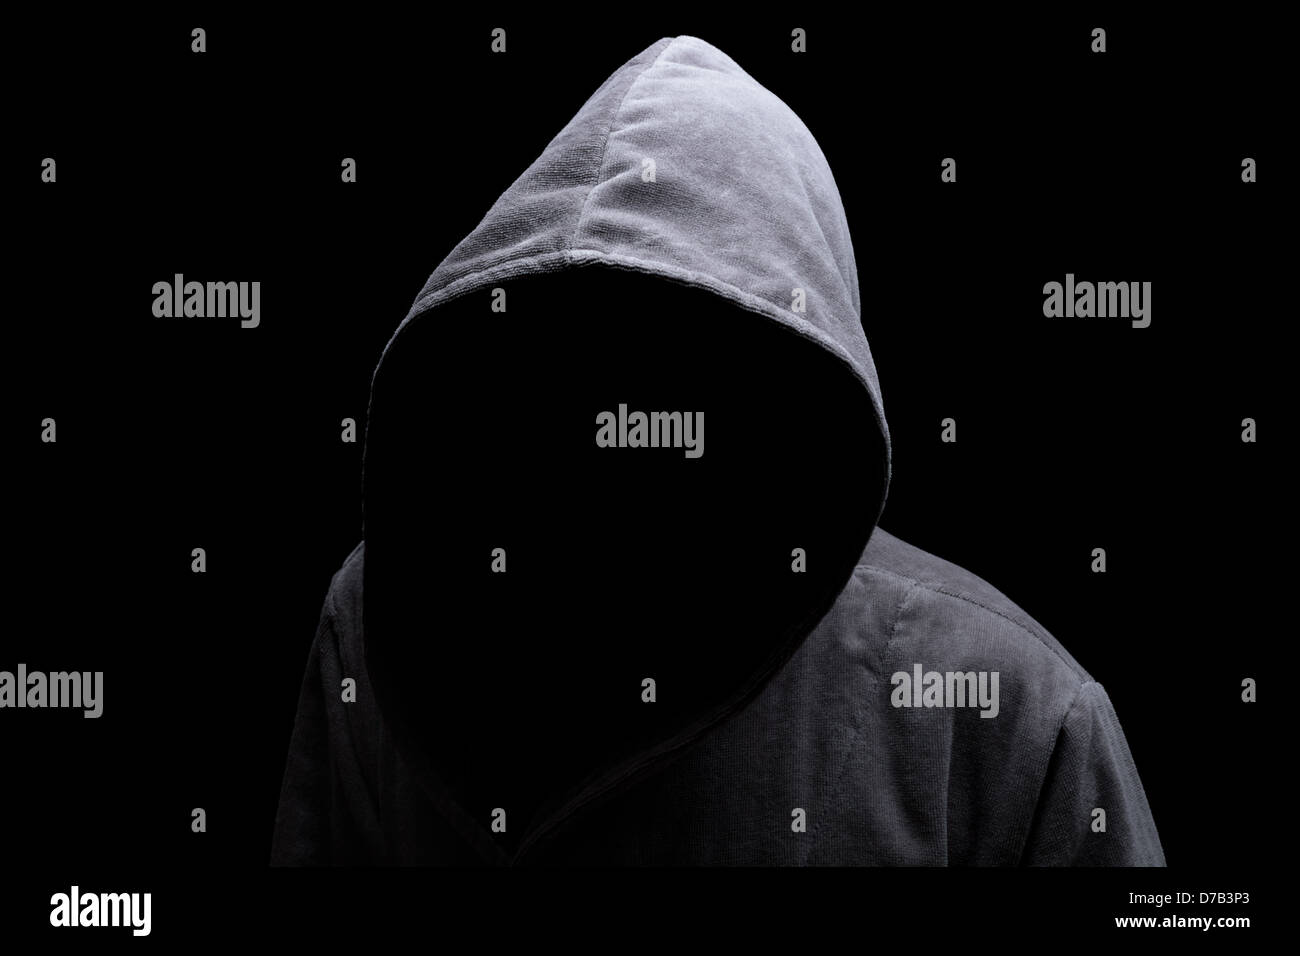 Hooded man in the shadow - Stock Image